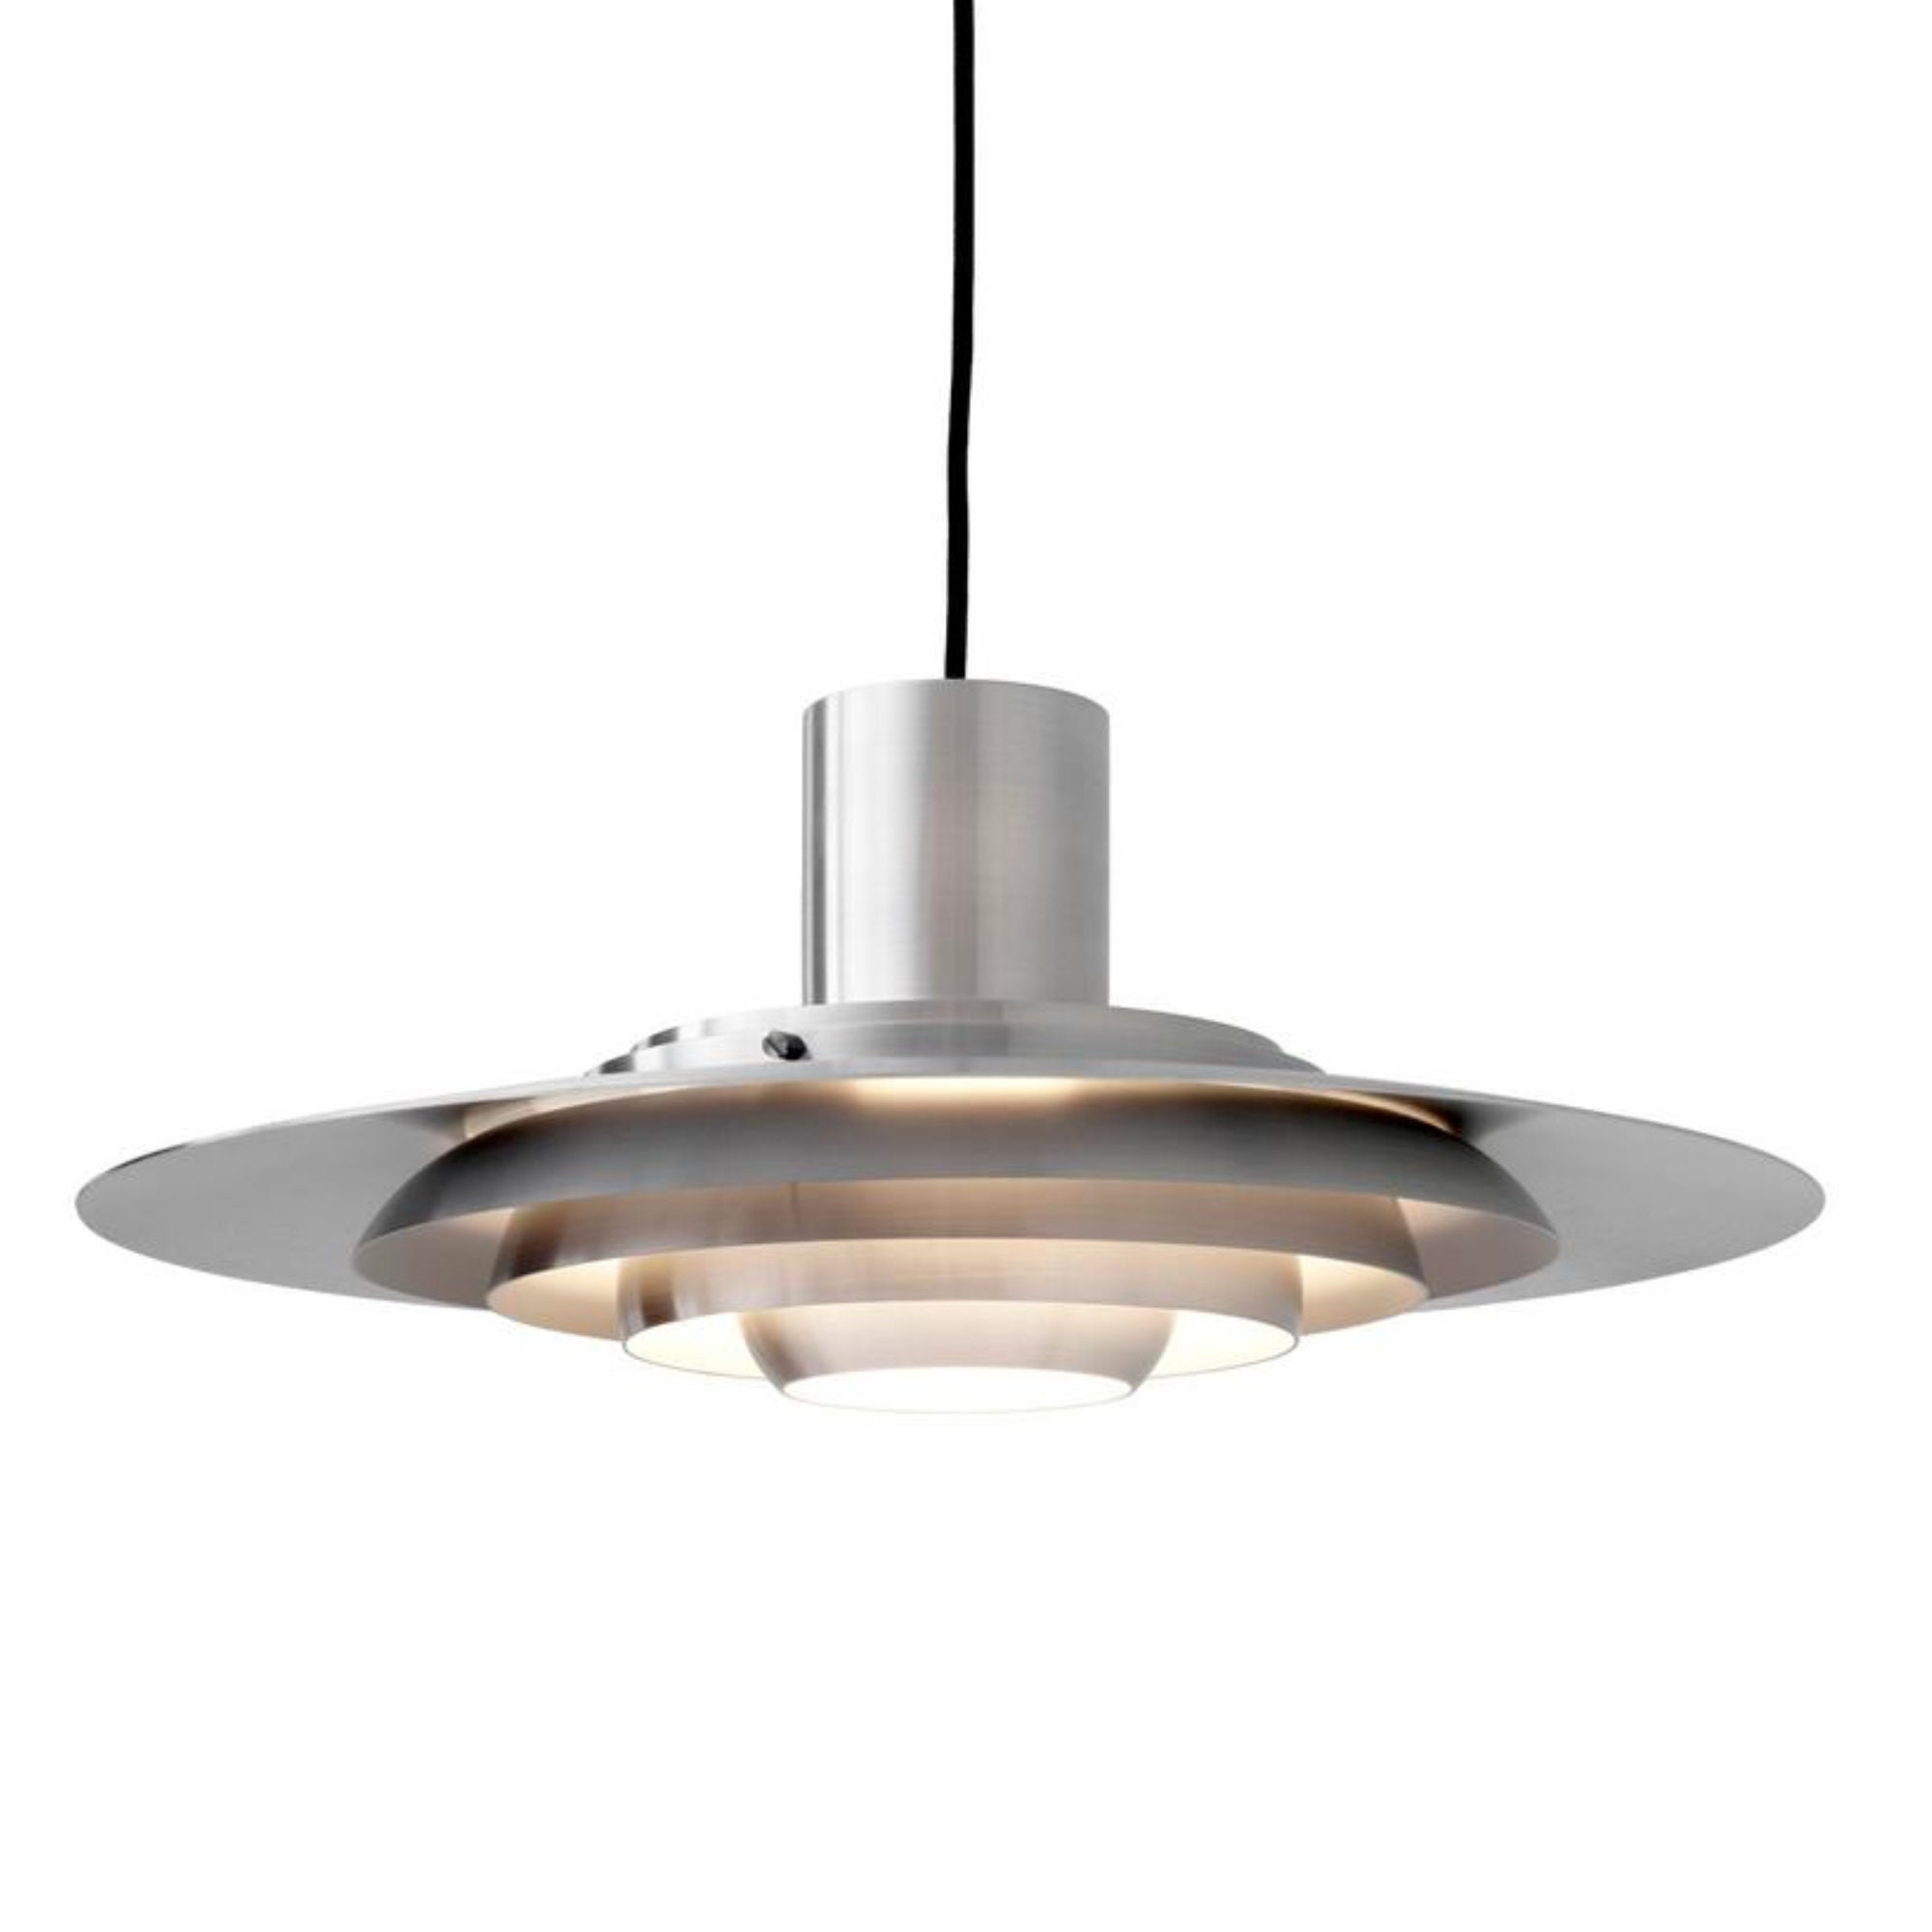 &Tradition P376 KF2 Pendant Lamp , Aluminium